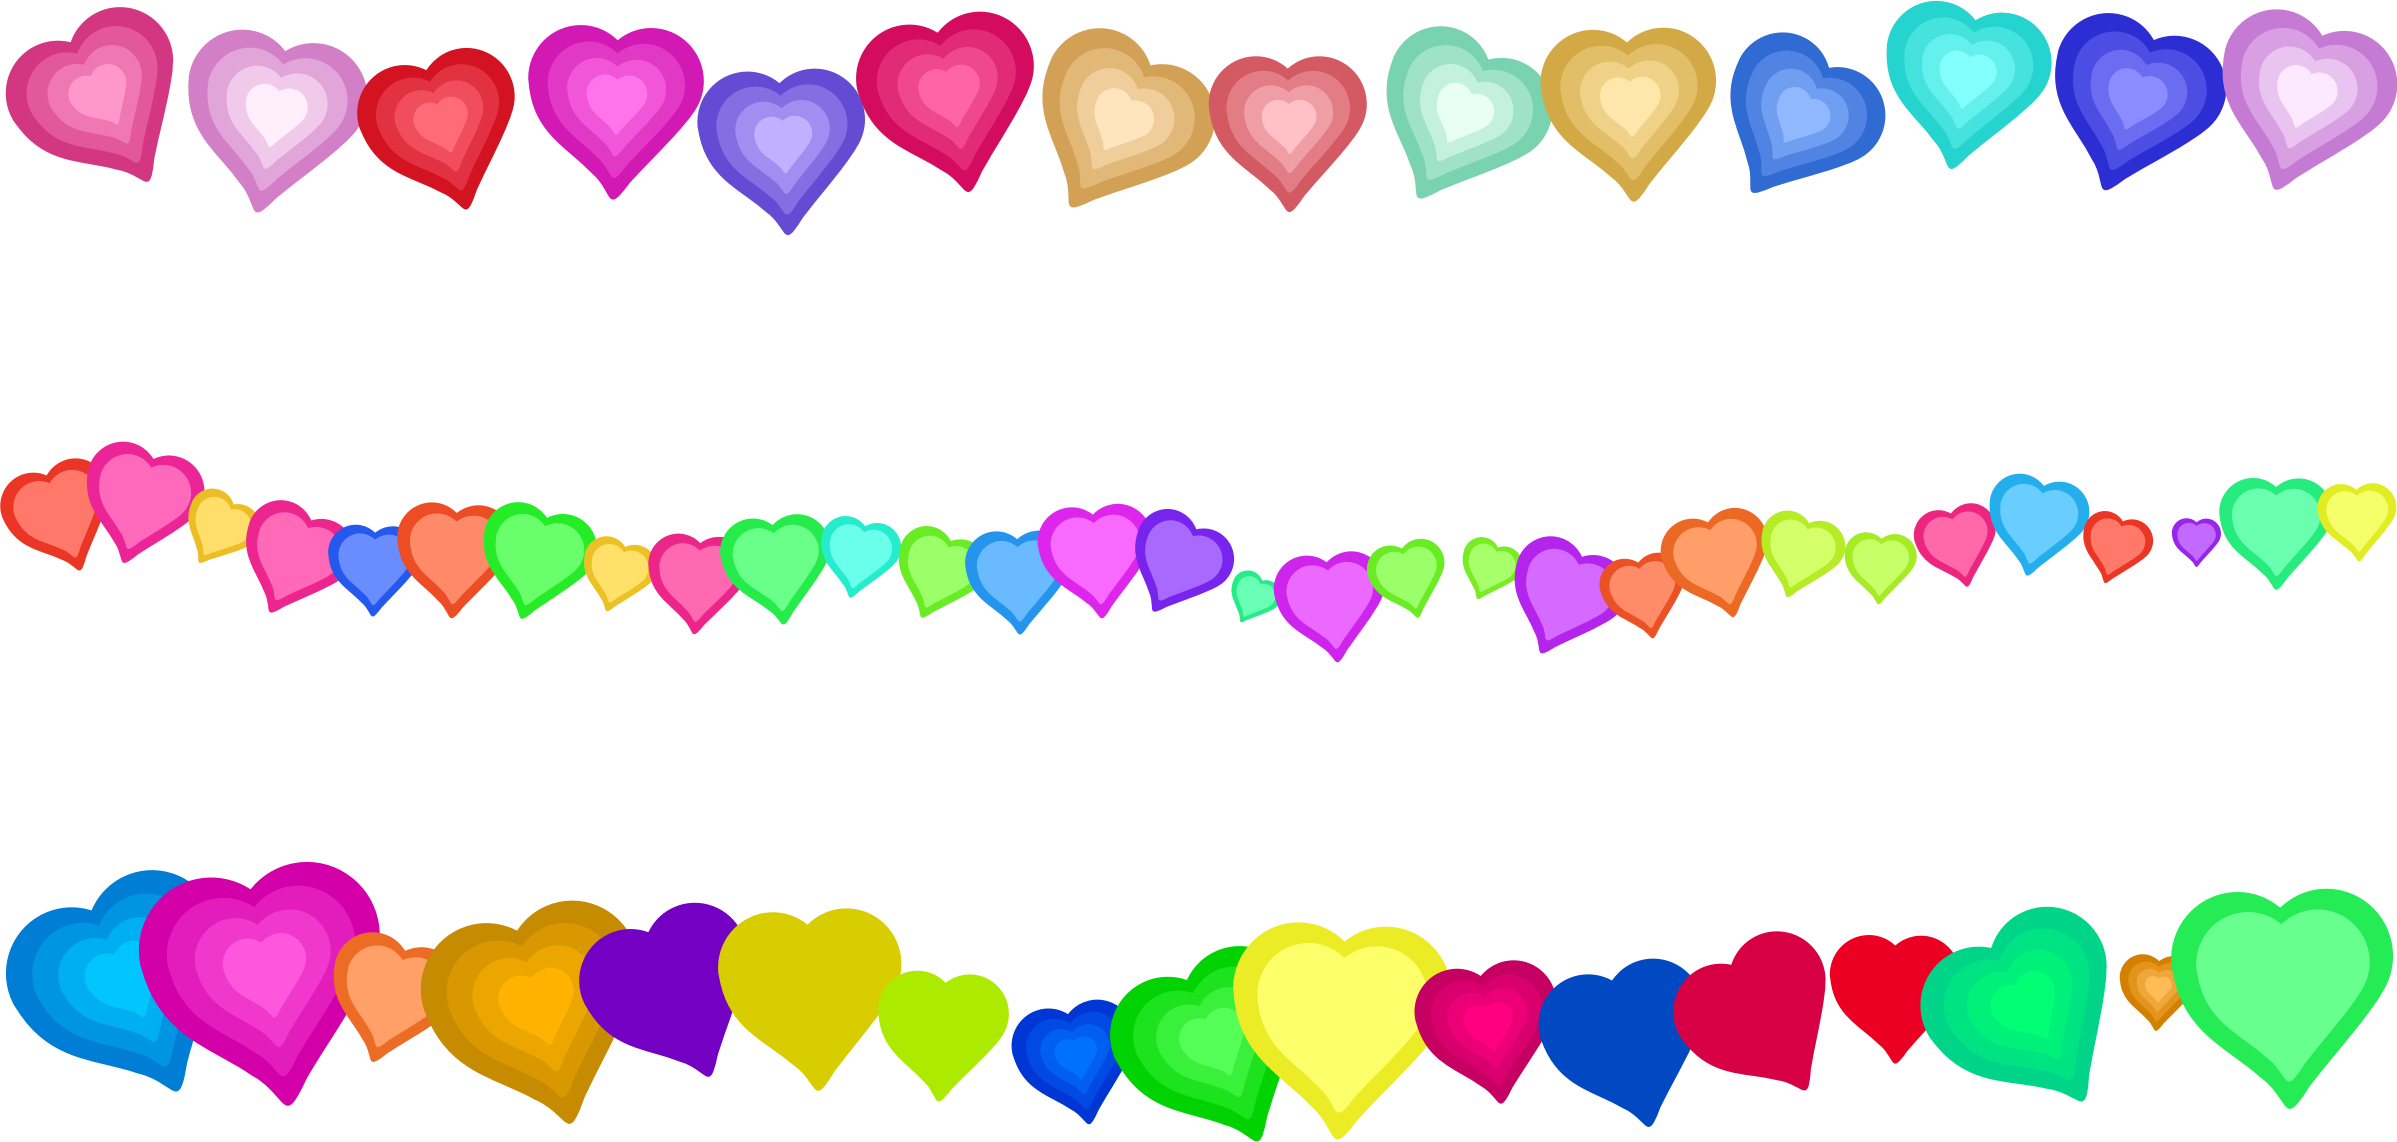 2397 x 1142 png 276kB, Heart Page Border Decorations by Prawny